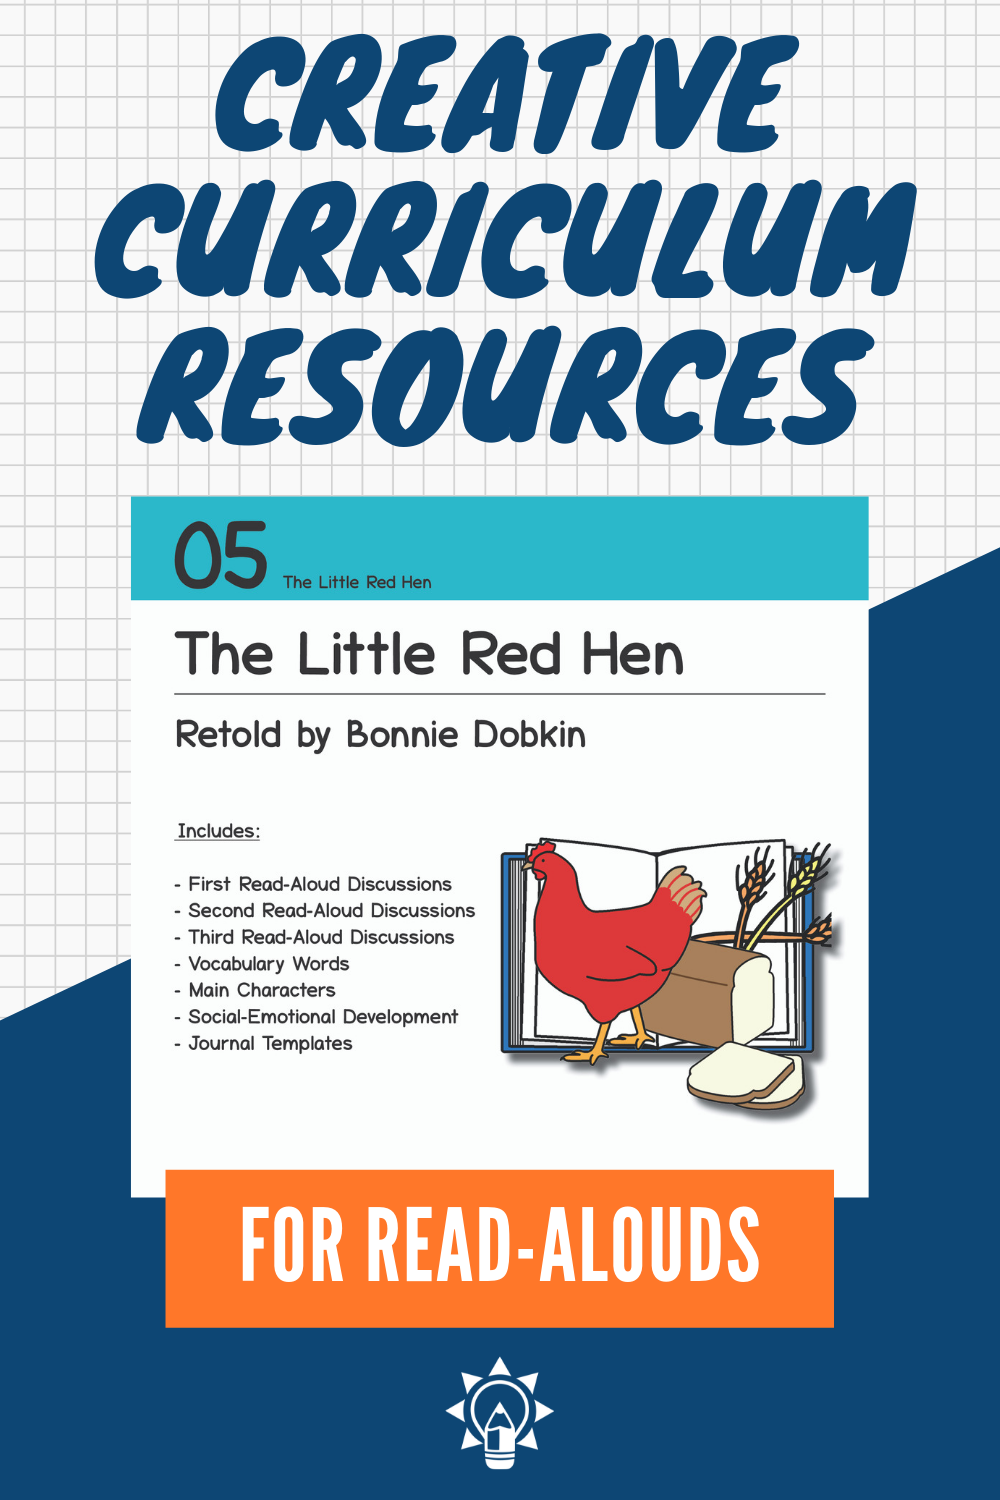 The Little Red Hen Supplement For Book Discussion Card 05 For Creative Curriculum From Teachin Creative Curriculum Teaching Strategies Teaching Strategies Gold